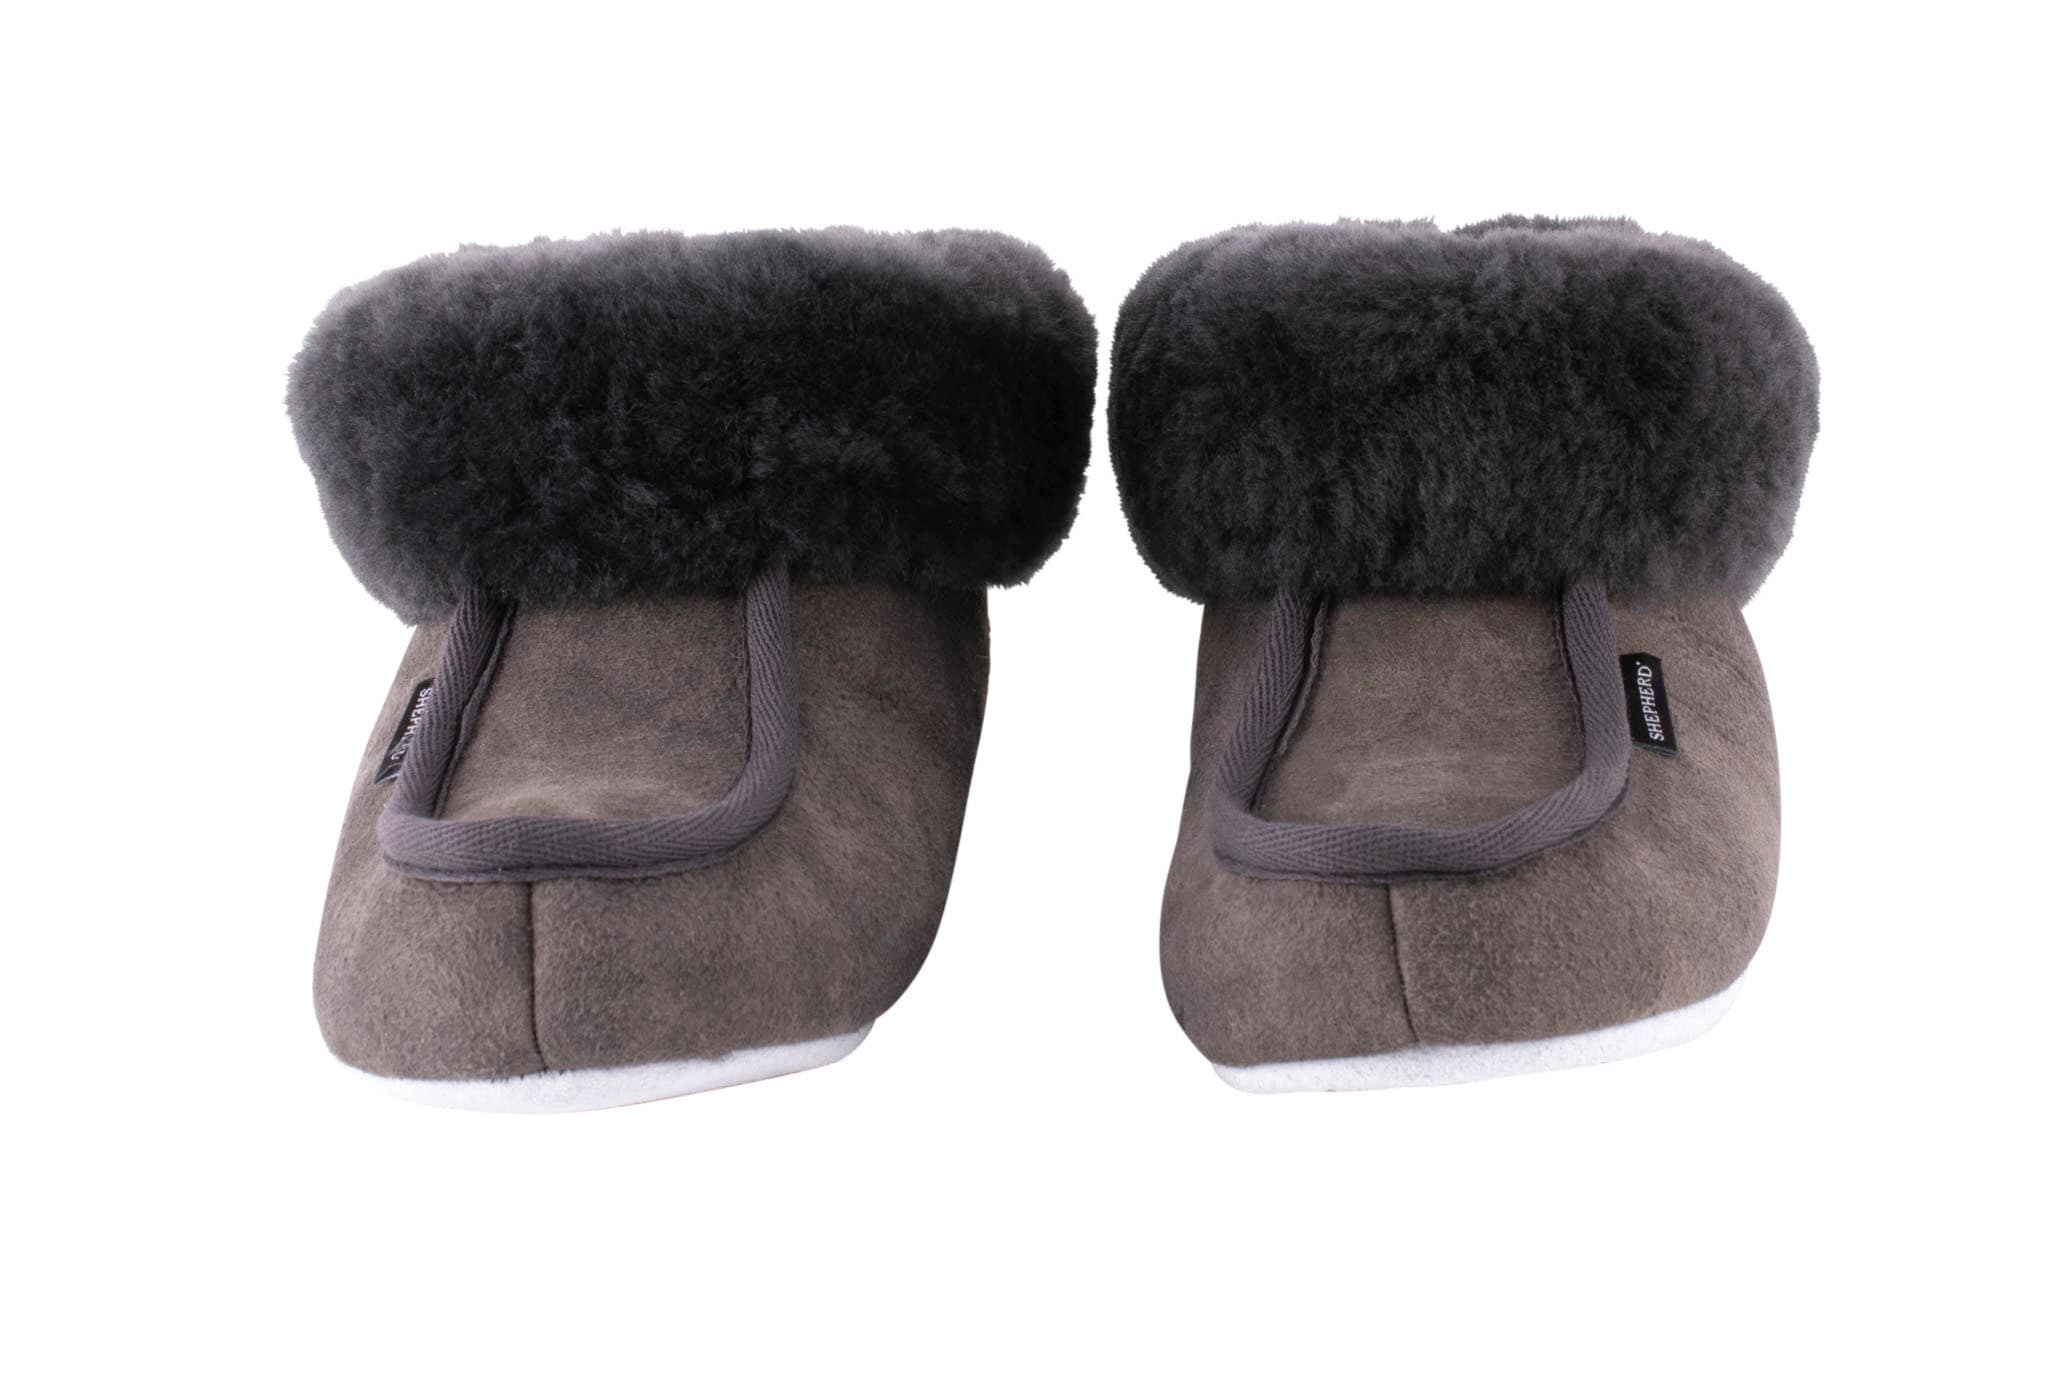 Moa sheepskin slippers